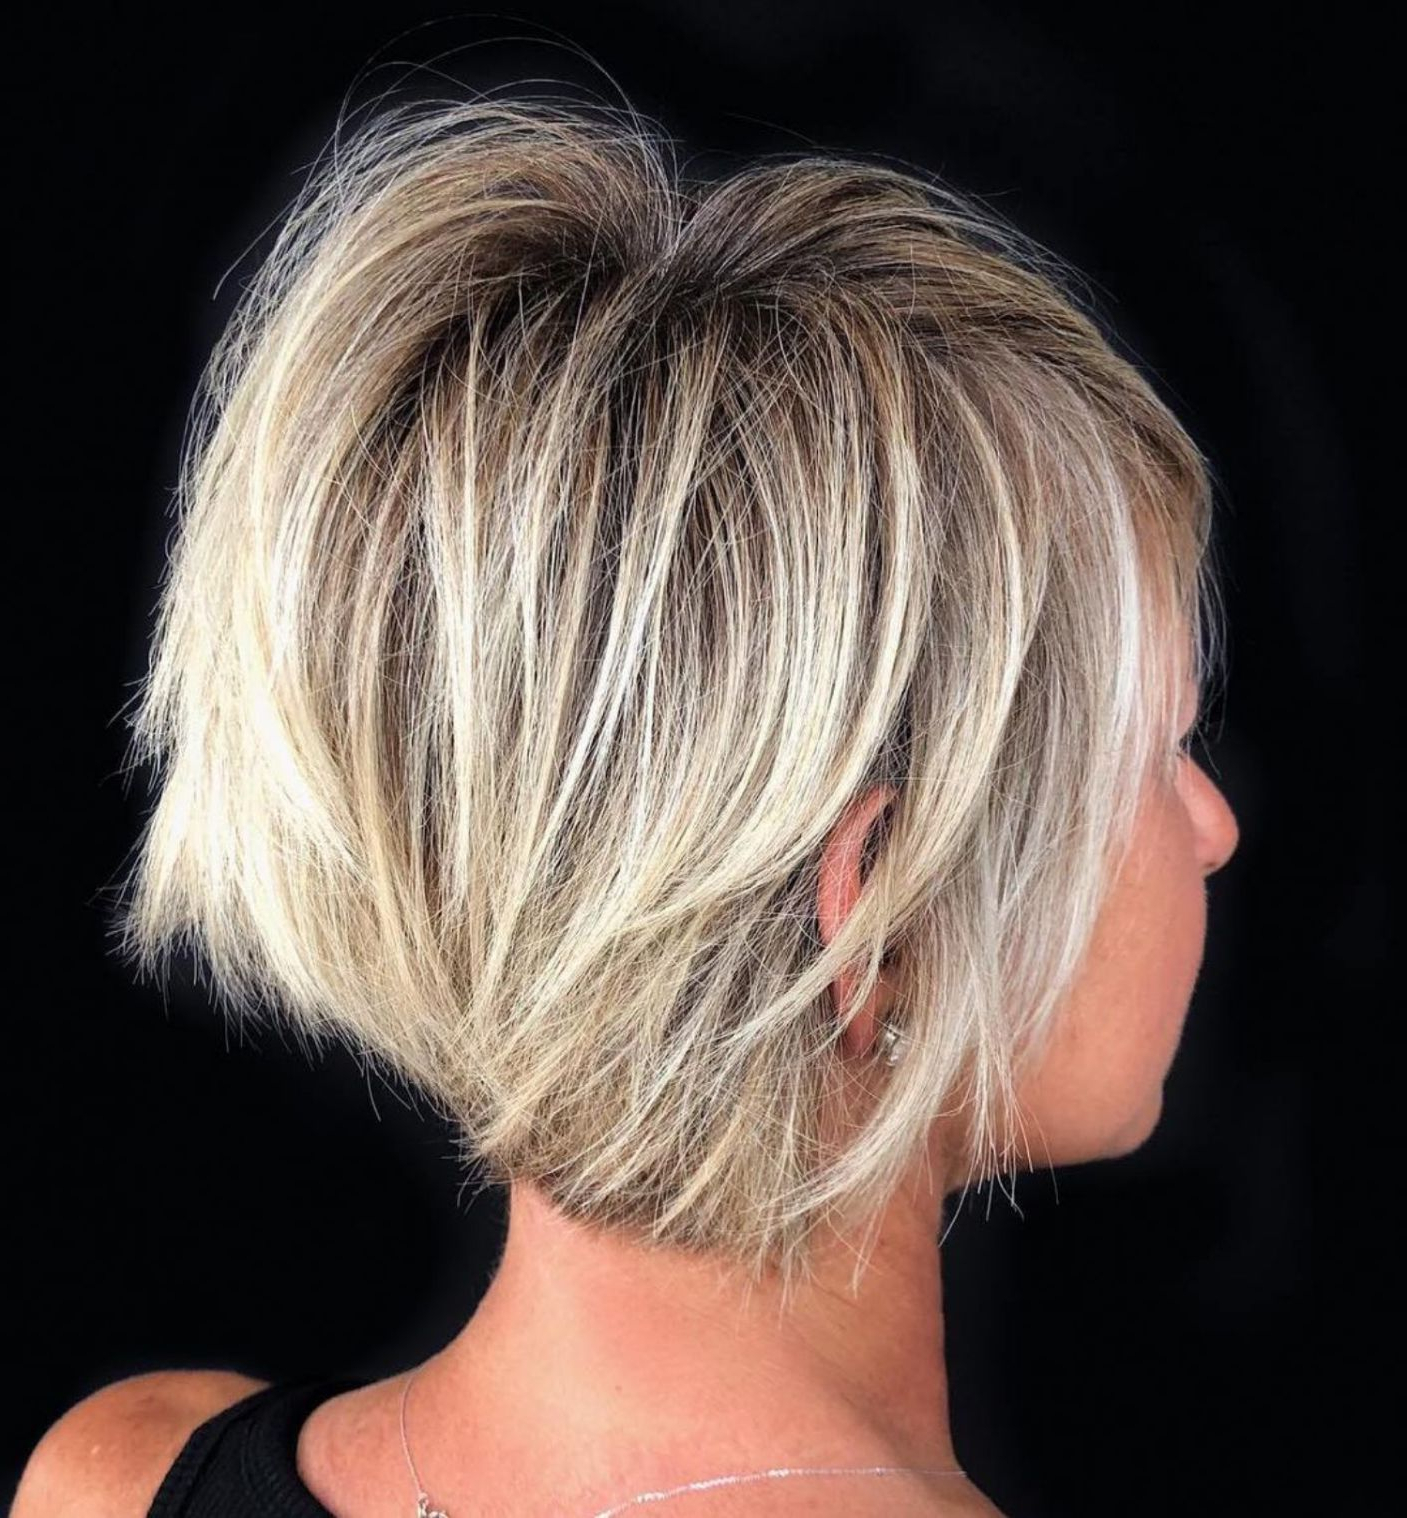 60 Best Short Bob Haircuts And Hairstyles For Women In 2018 | Hair In Stacked Blonde Balayage Pixie Hairstyles For Brunettes (View 8 of 20)